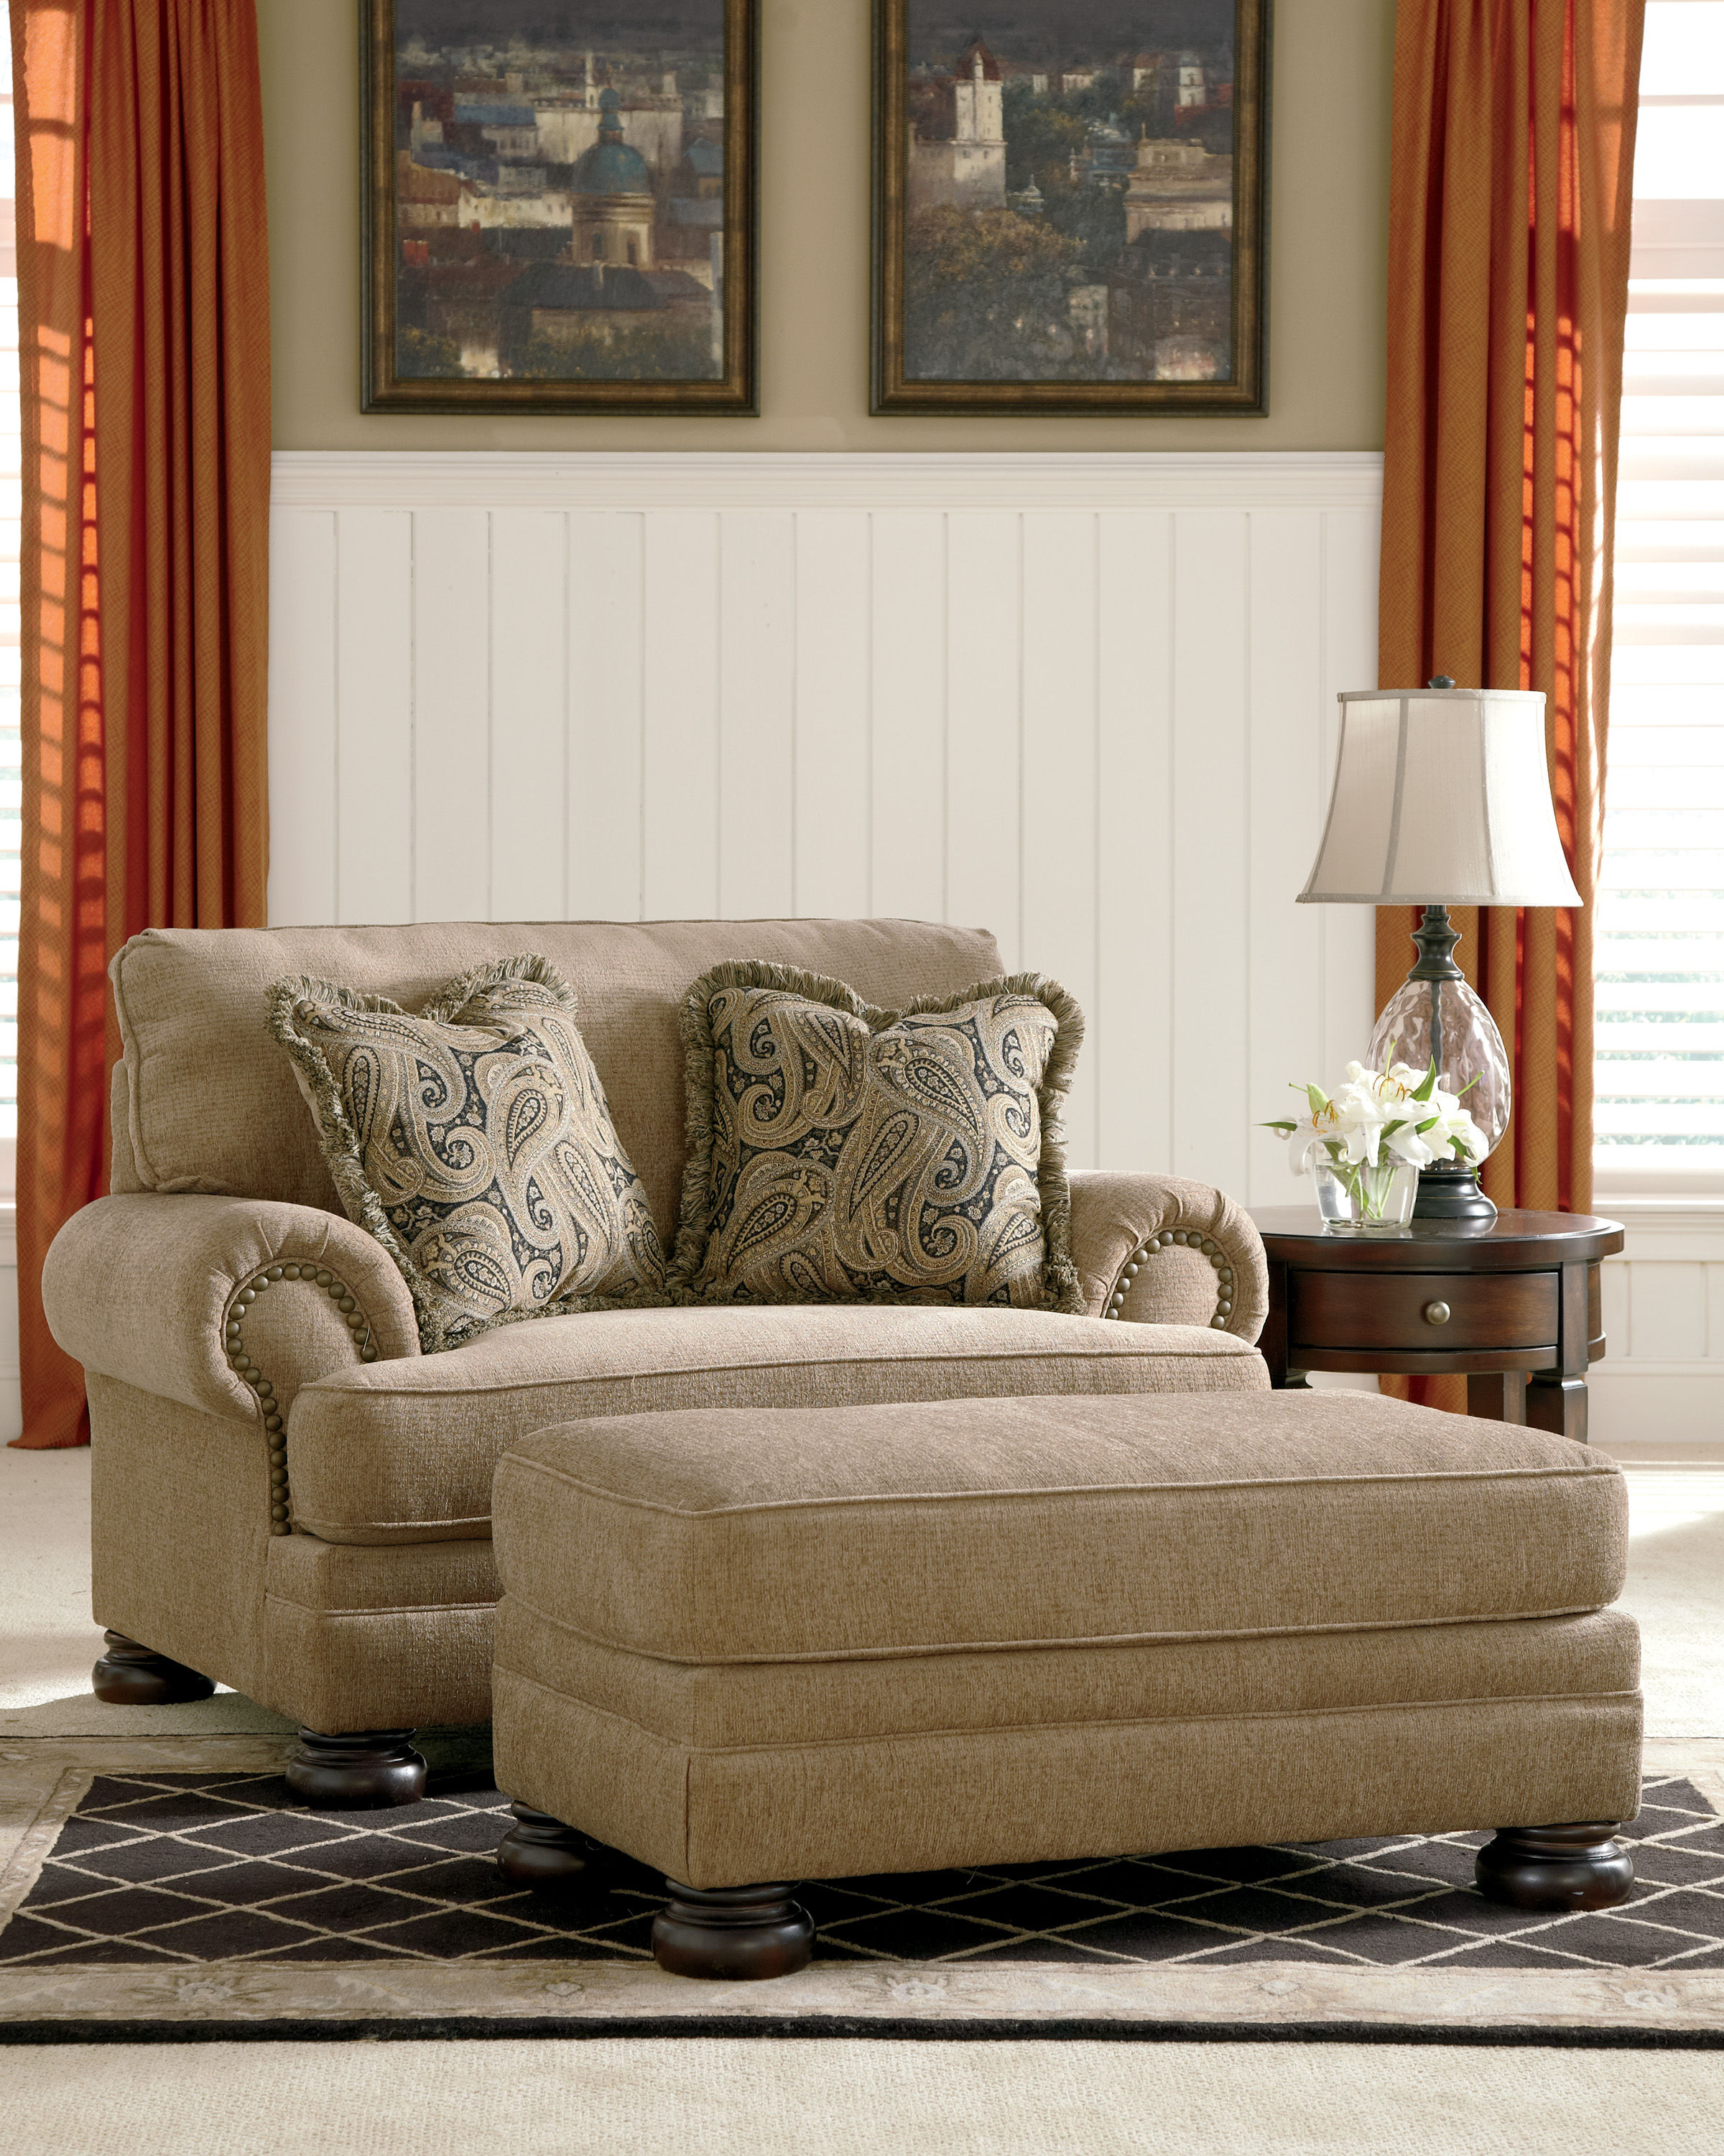 Ashley furniture keereel sand chair and ottoman set click to enlarge